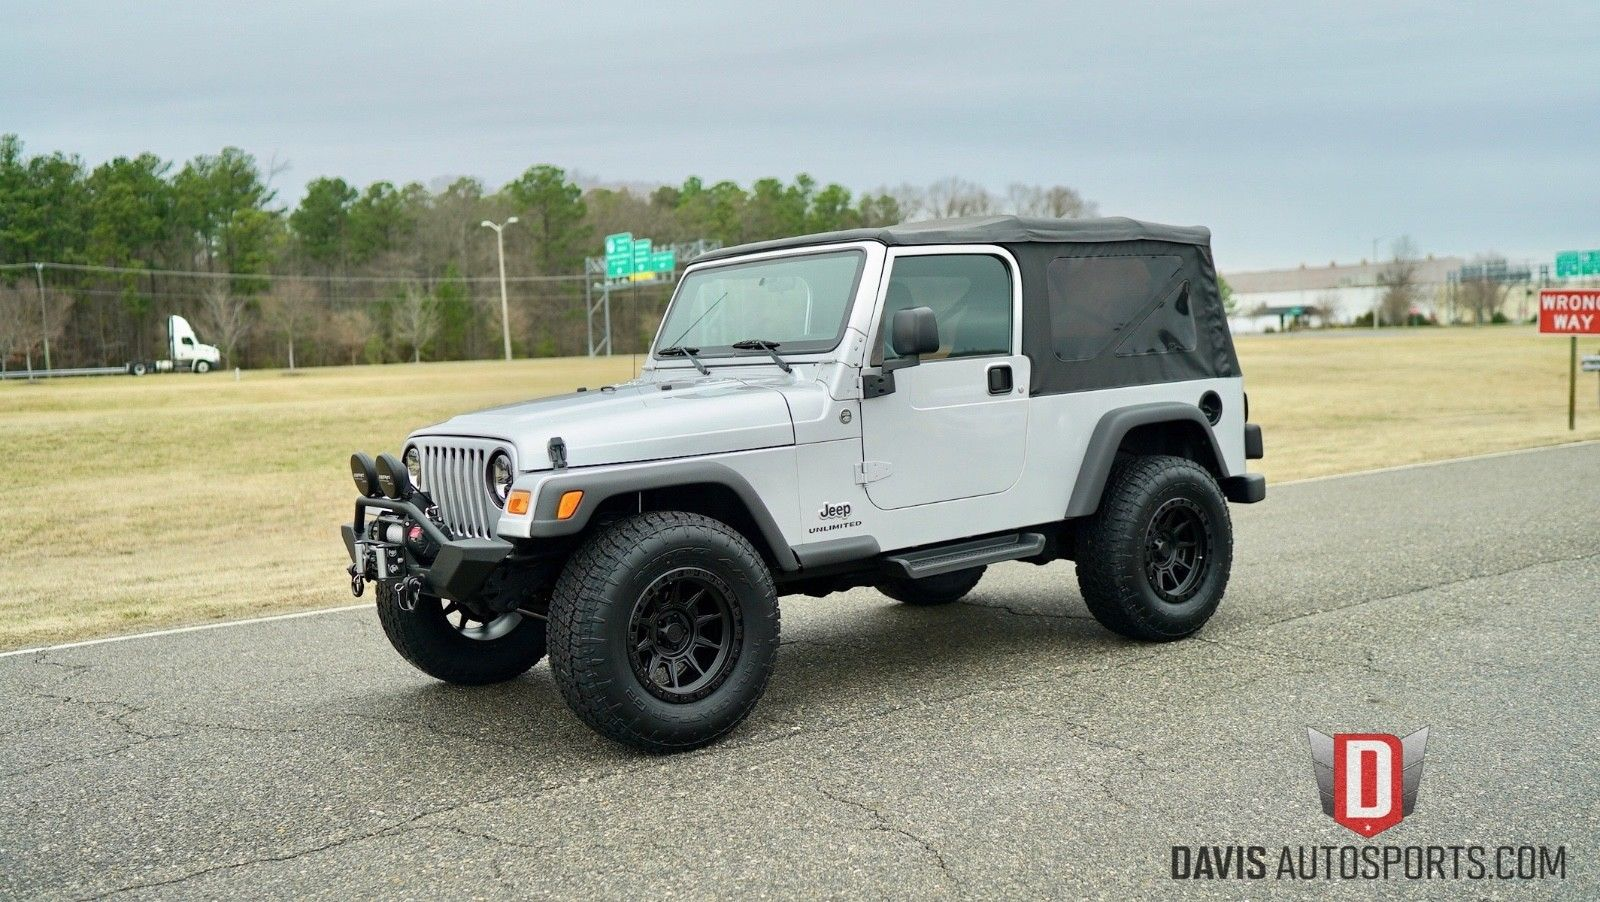 Great 2005 Jeep Wrangler Unlimited Lj 2 Door Unimited 4 Auto Lifted 2017 2018